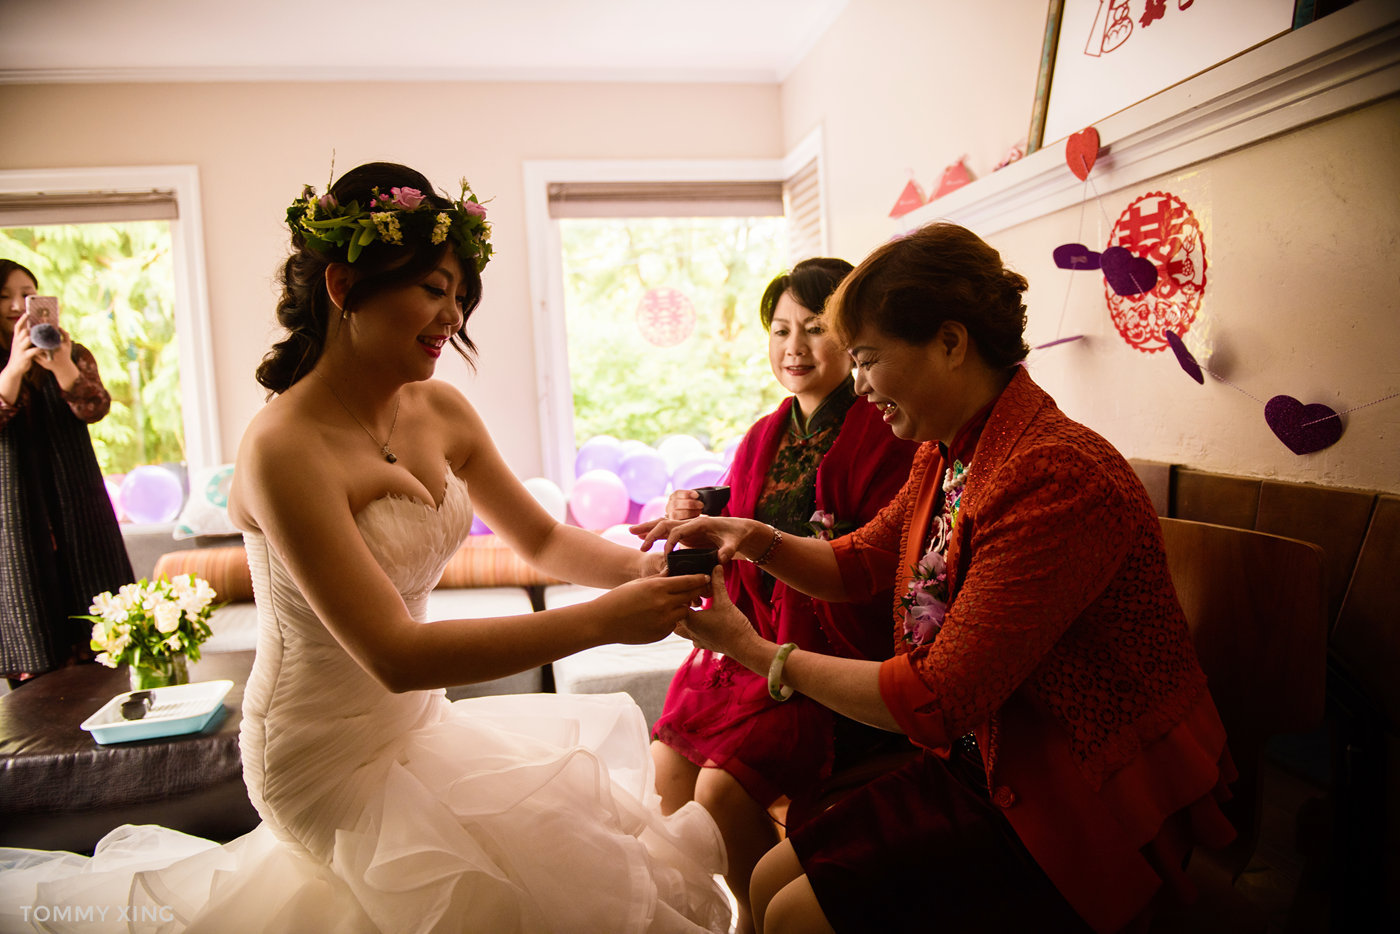 Seattle Wedding and pre wedding Los Angeles Tommy Xing Photography 西雅图洛杉矶旧金山婚礼婚纱照摄影师 027.jpg